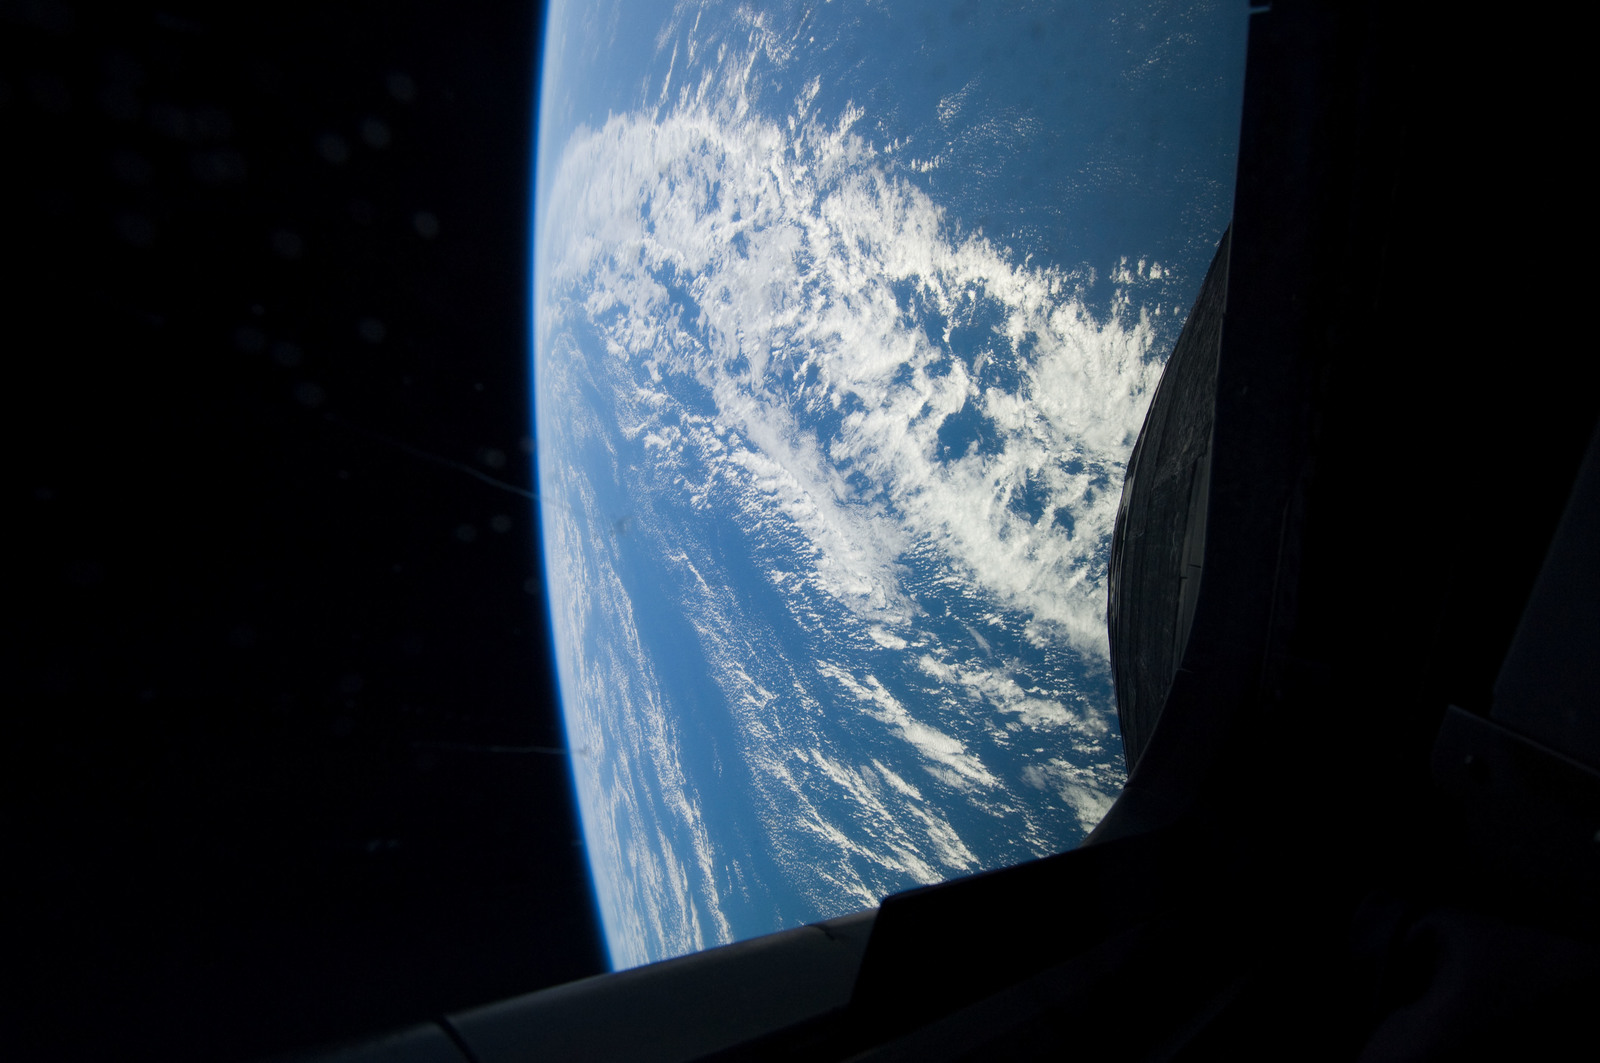 s133E006950 - STS-133 - Earth Observation taken by the STS-133 crew